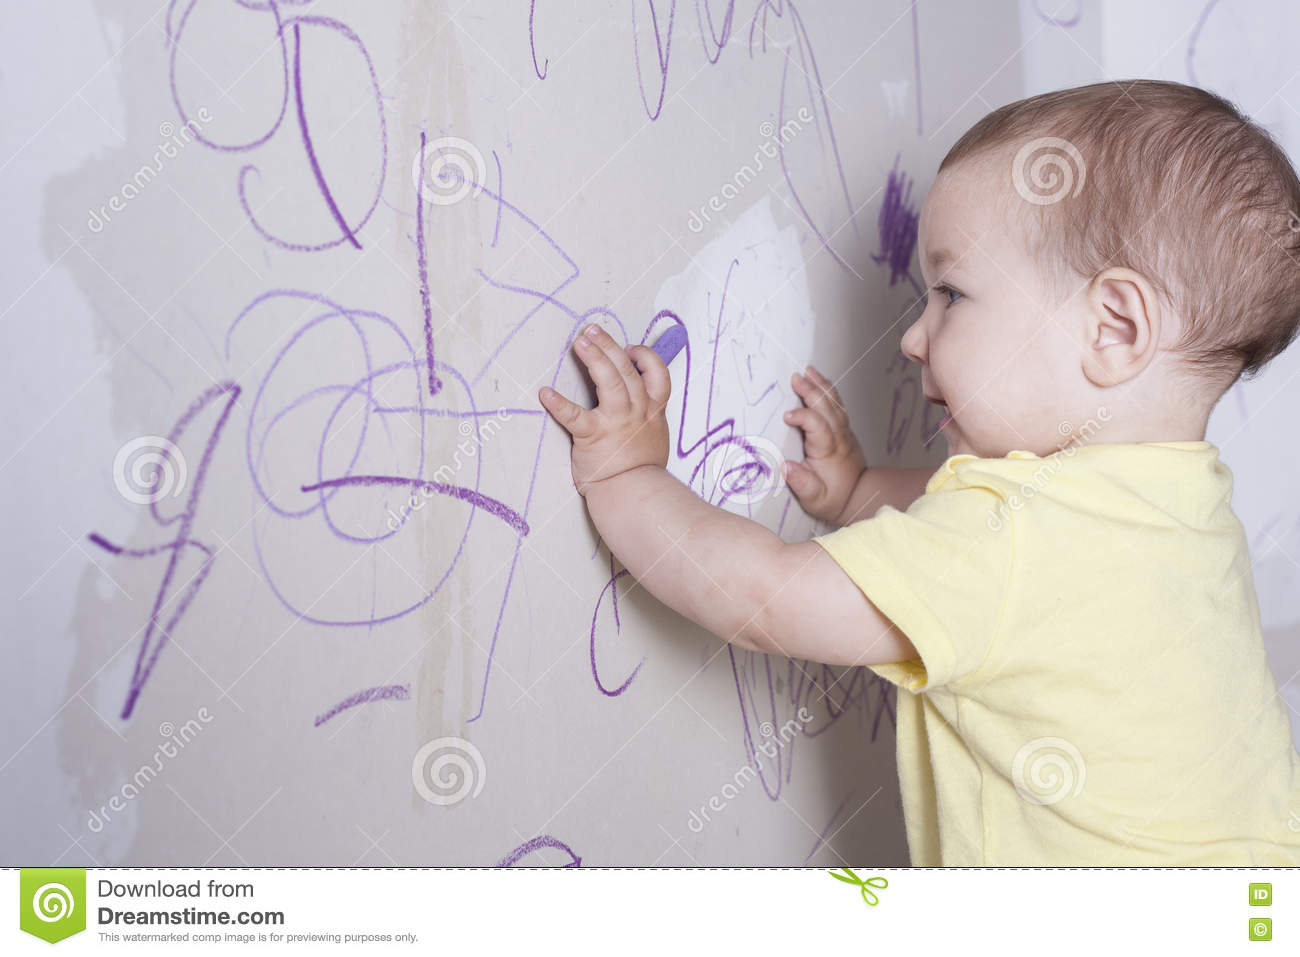 Roze Gipsplaat Baby Boy Drawing With Wax Crayon On Plasterboard Wall